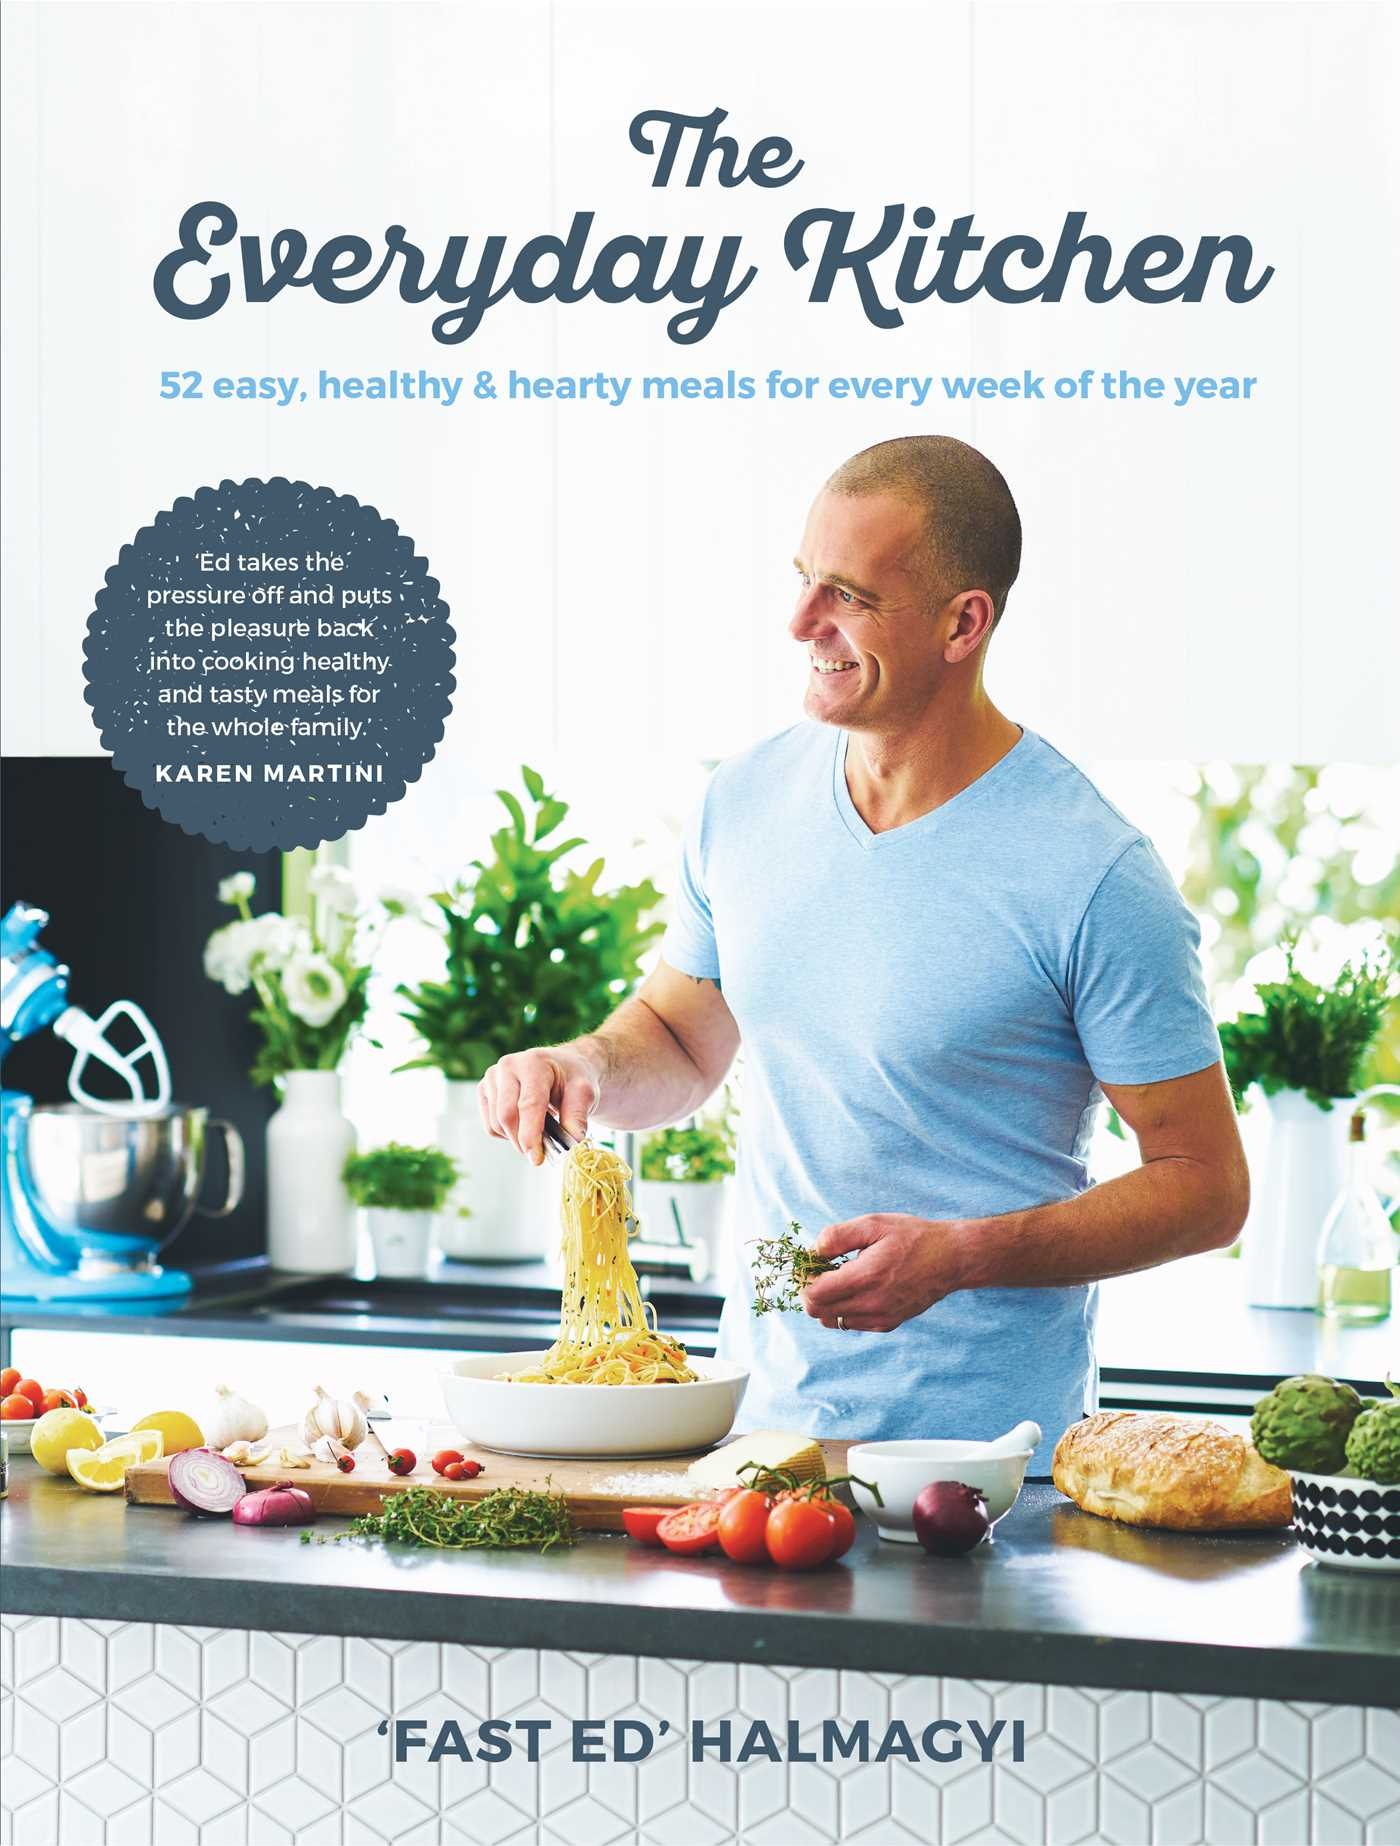 Everyday kitchen 52 easy healthy and hearty meals 9781925418392 hr